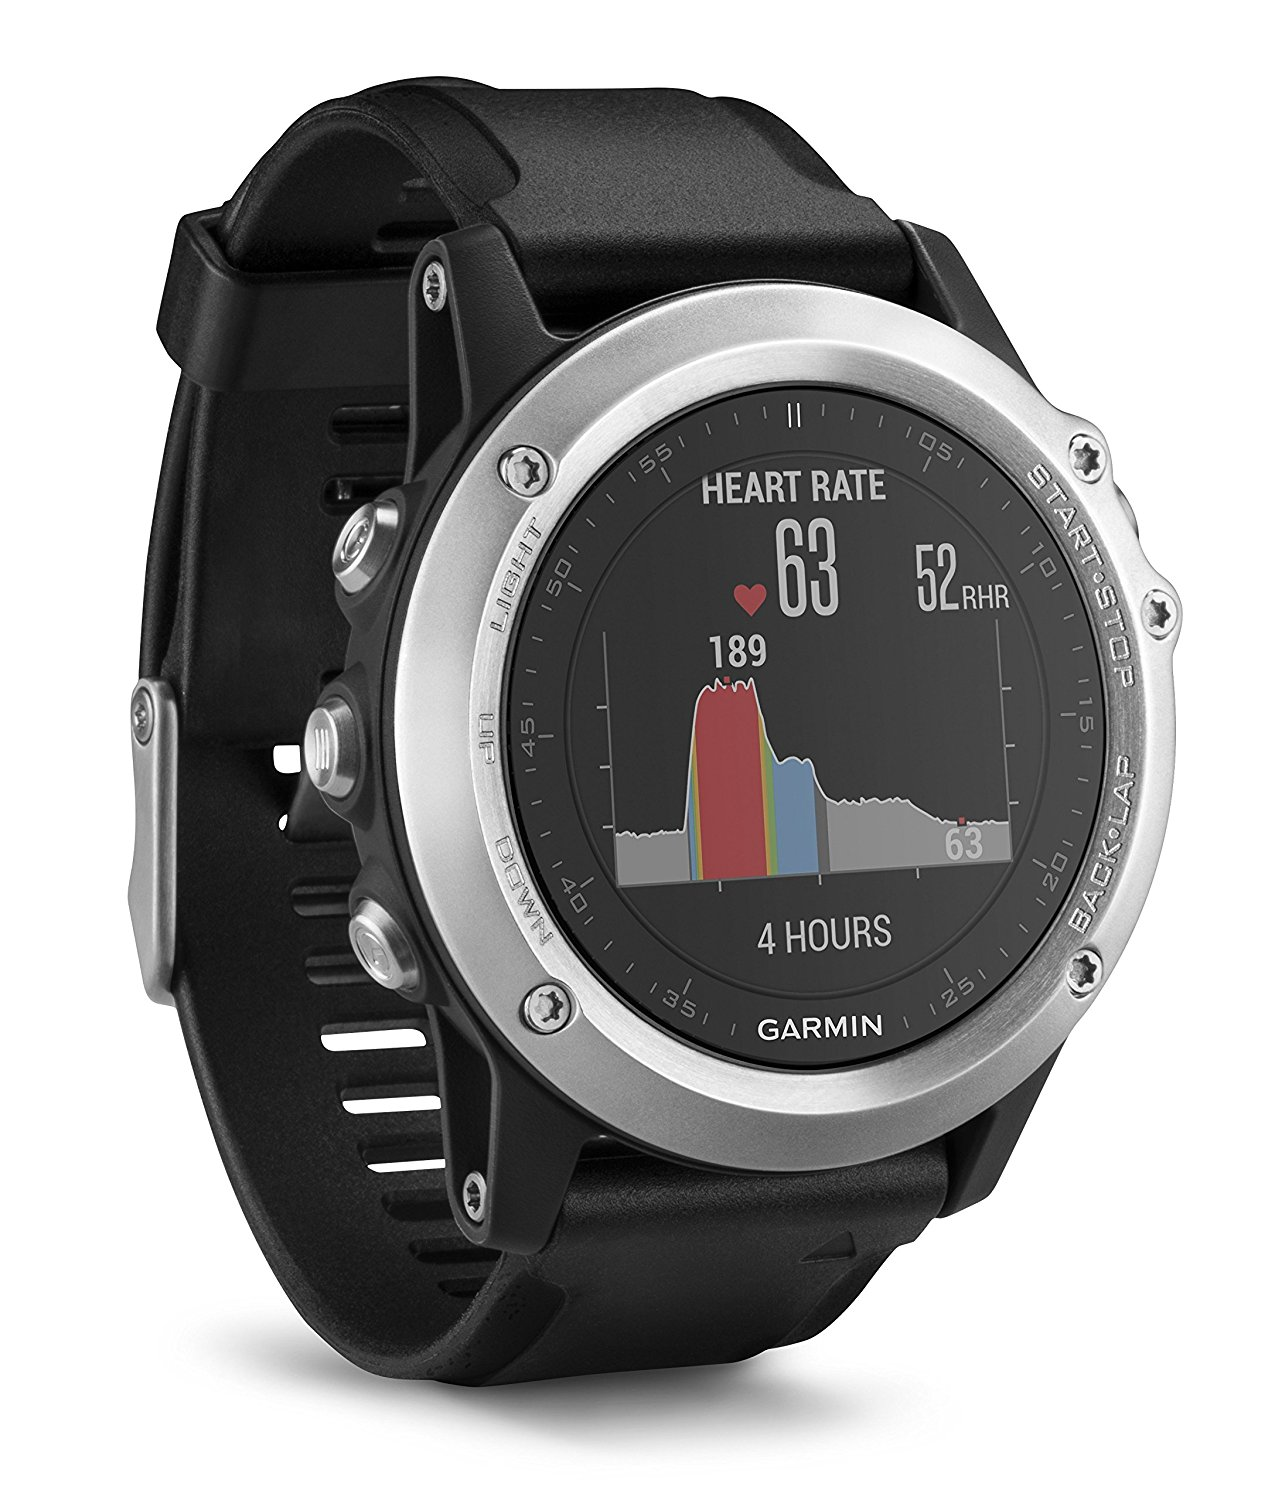 Garmin Sportuhr amazon